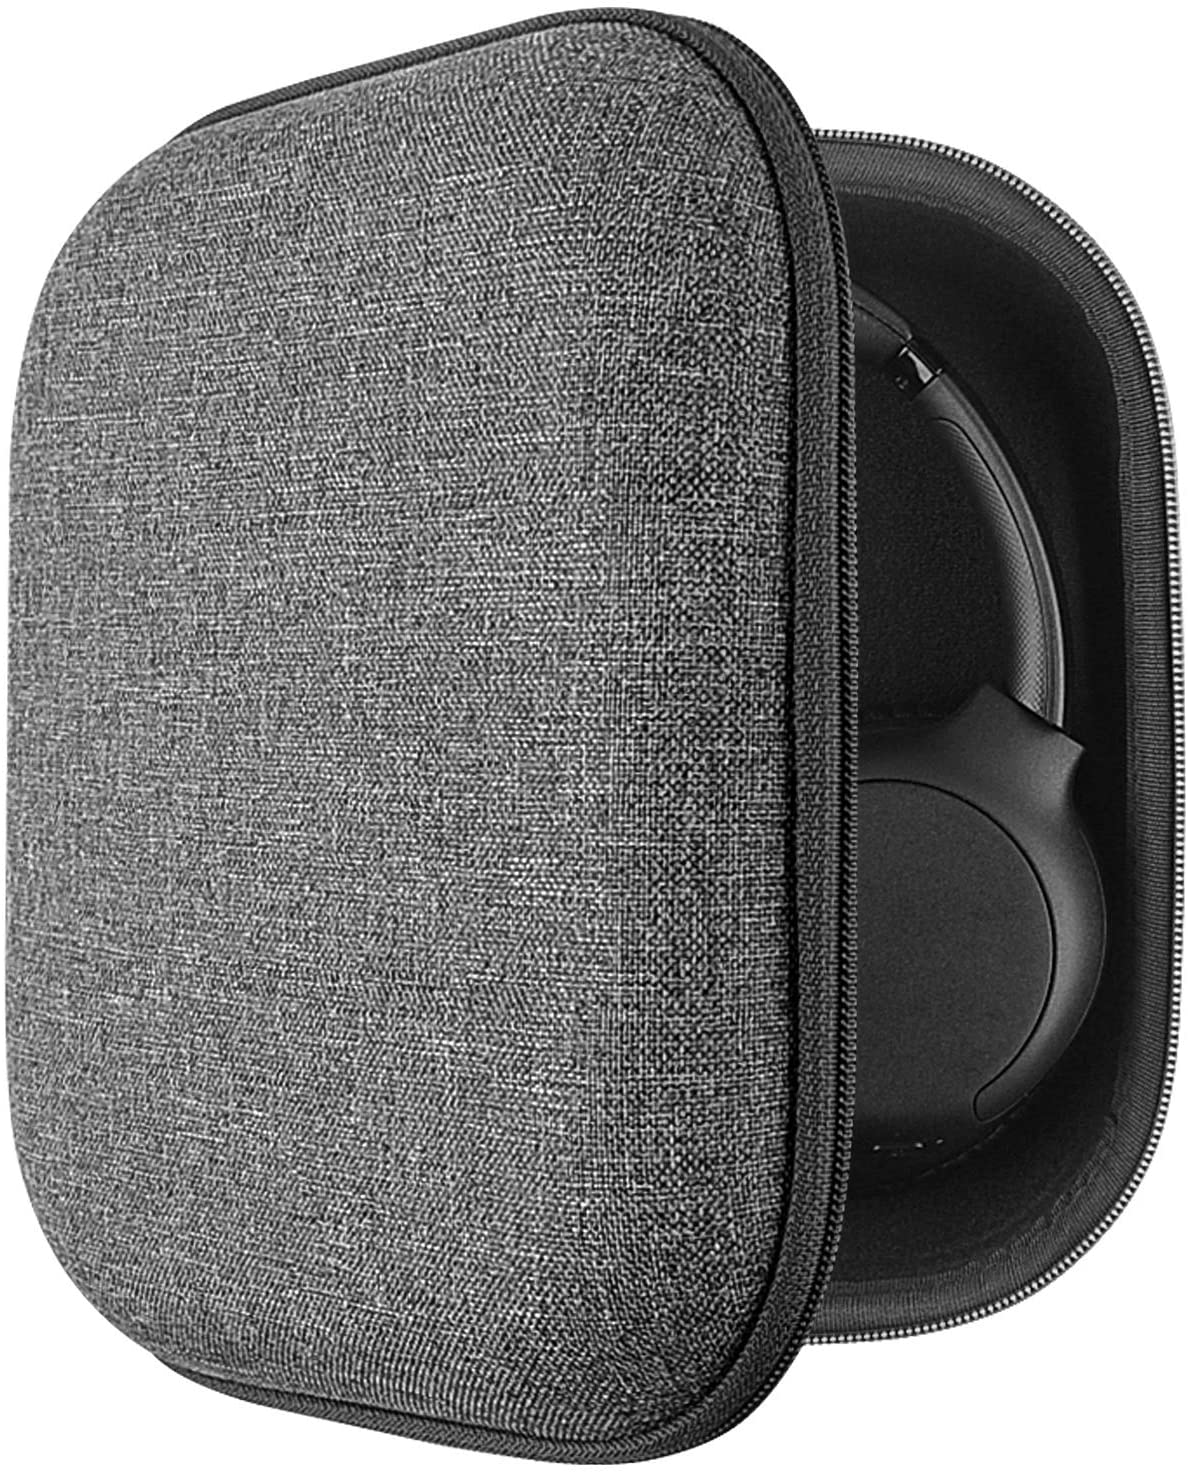 Geekria UltraShell Case for Sony WH-CH710N, WH-CH700N, WH-1000XM4, WH-1000XM3, WH-1000XM2, MDR-1000X Headphones, Replacement Protective Hard Shell Travel Carrying Bag with Room for Accessories